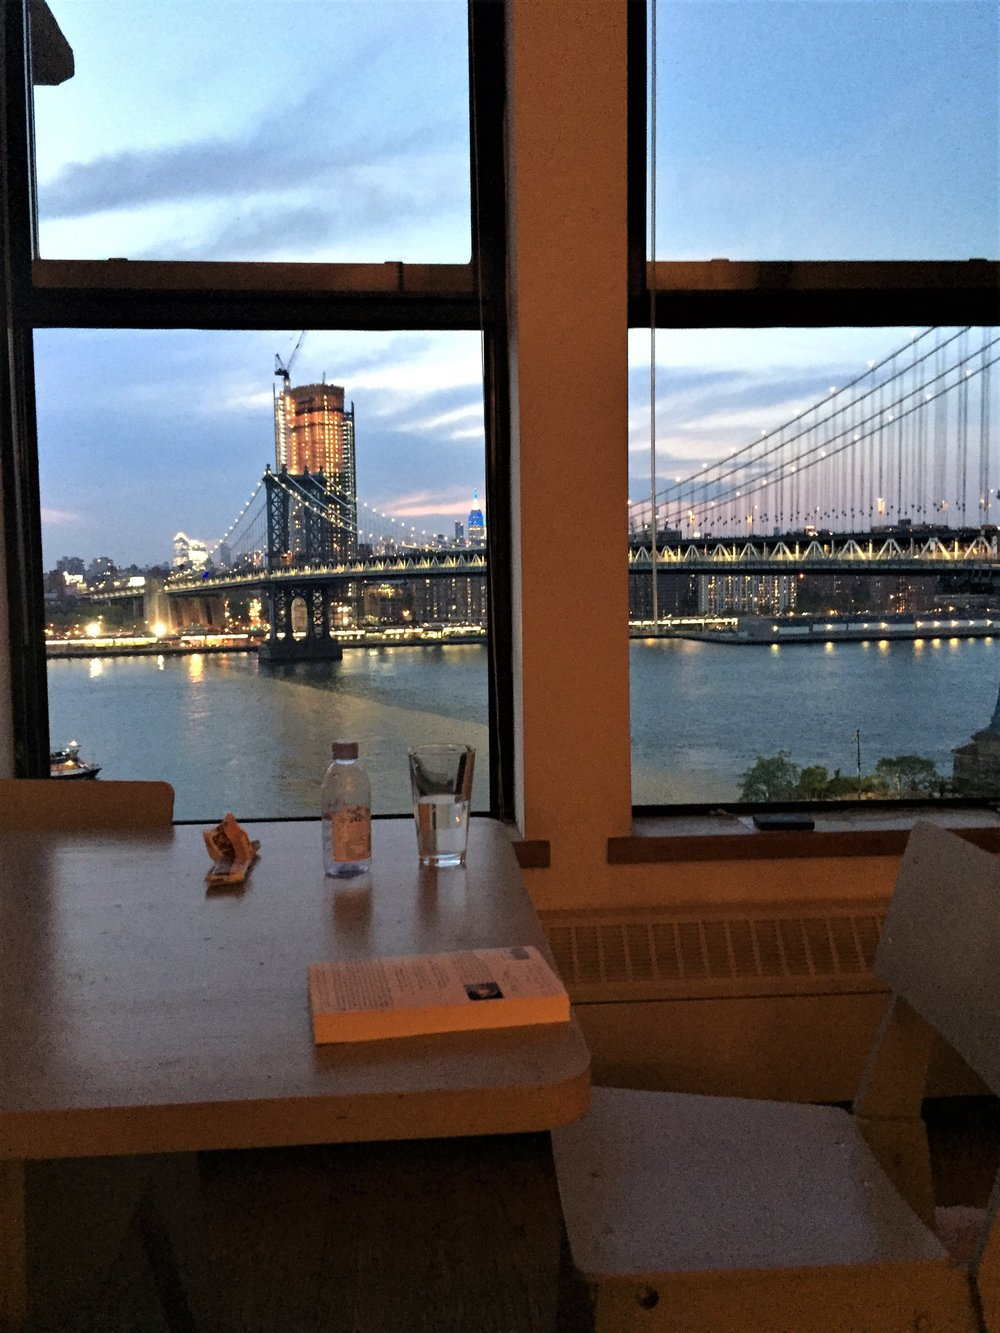 Room with a view - eyes right - Manhattan Bridge